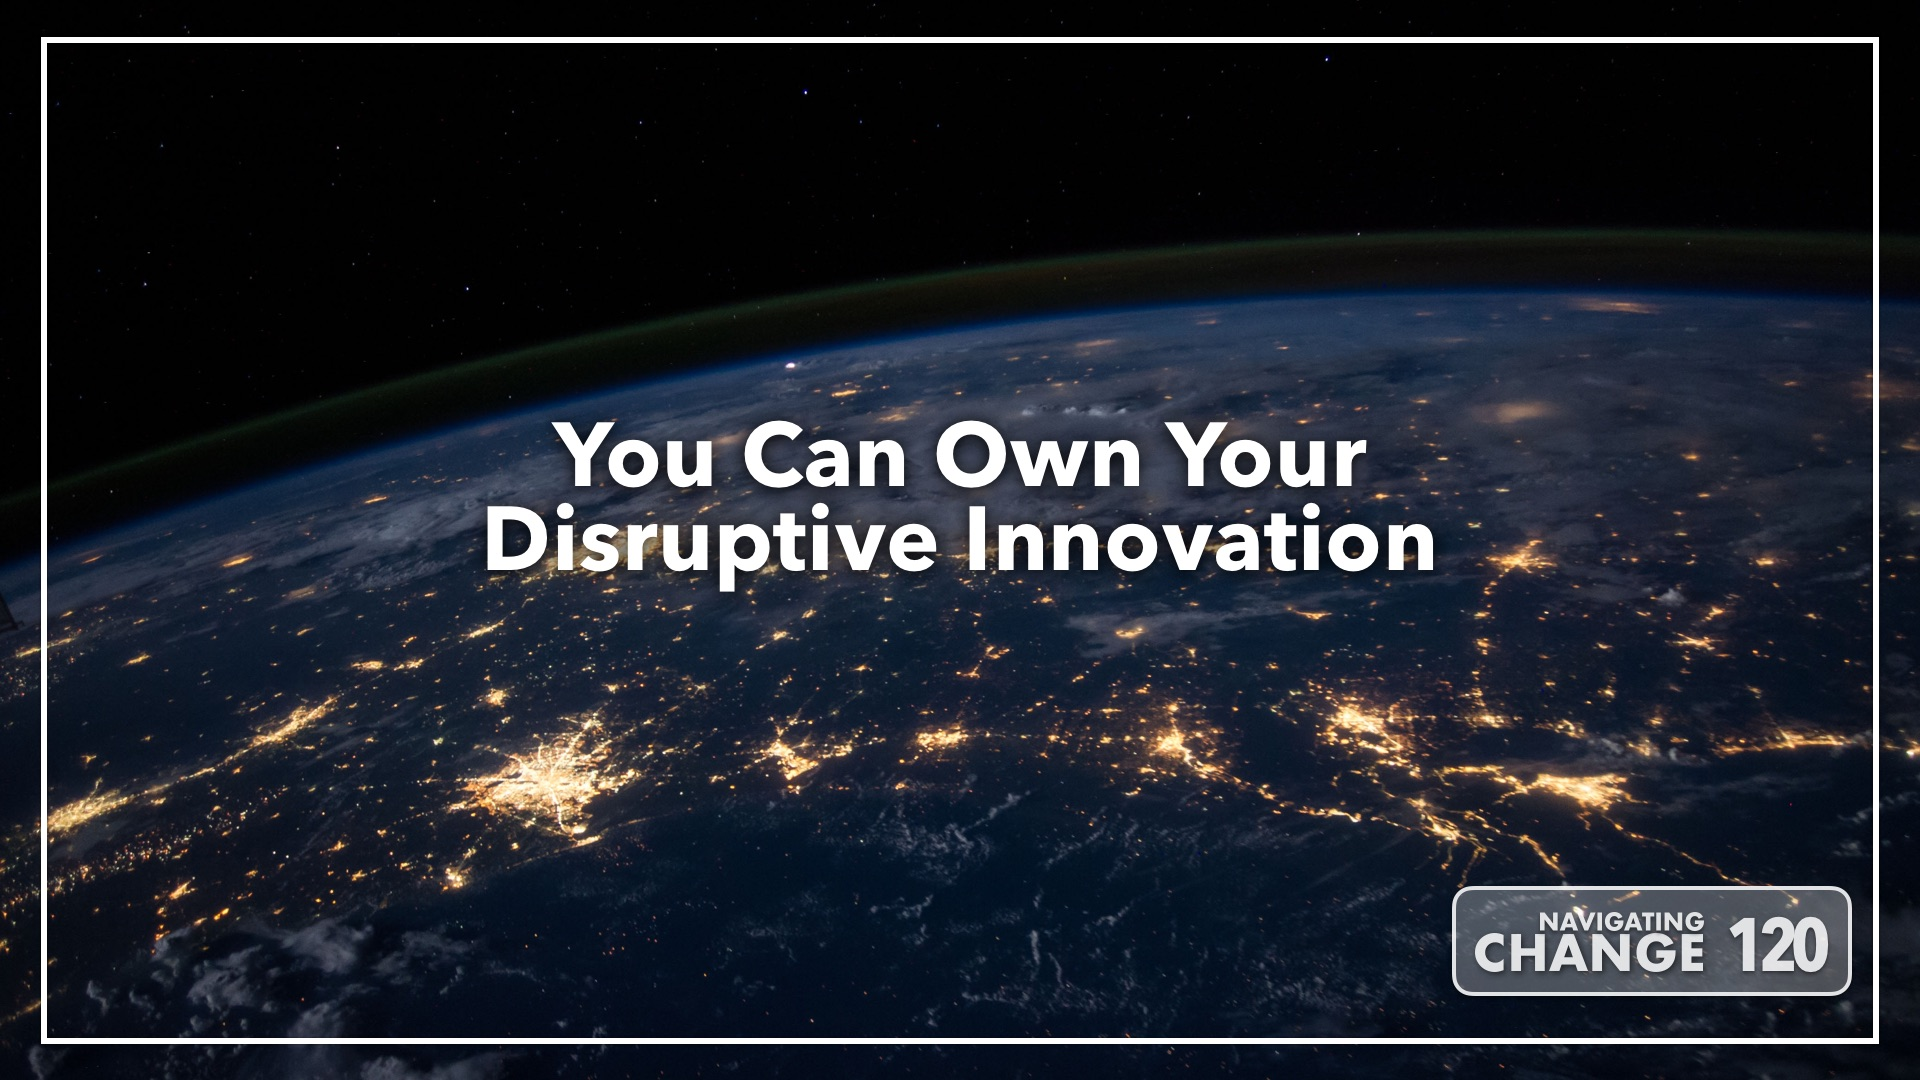 Listen to Disruptive Innovation on Navigating Change The Education Podcast